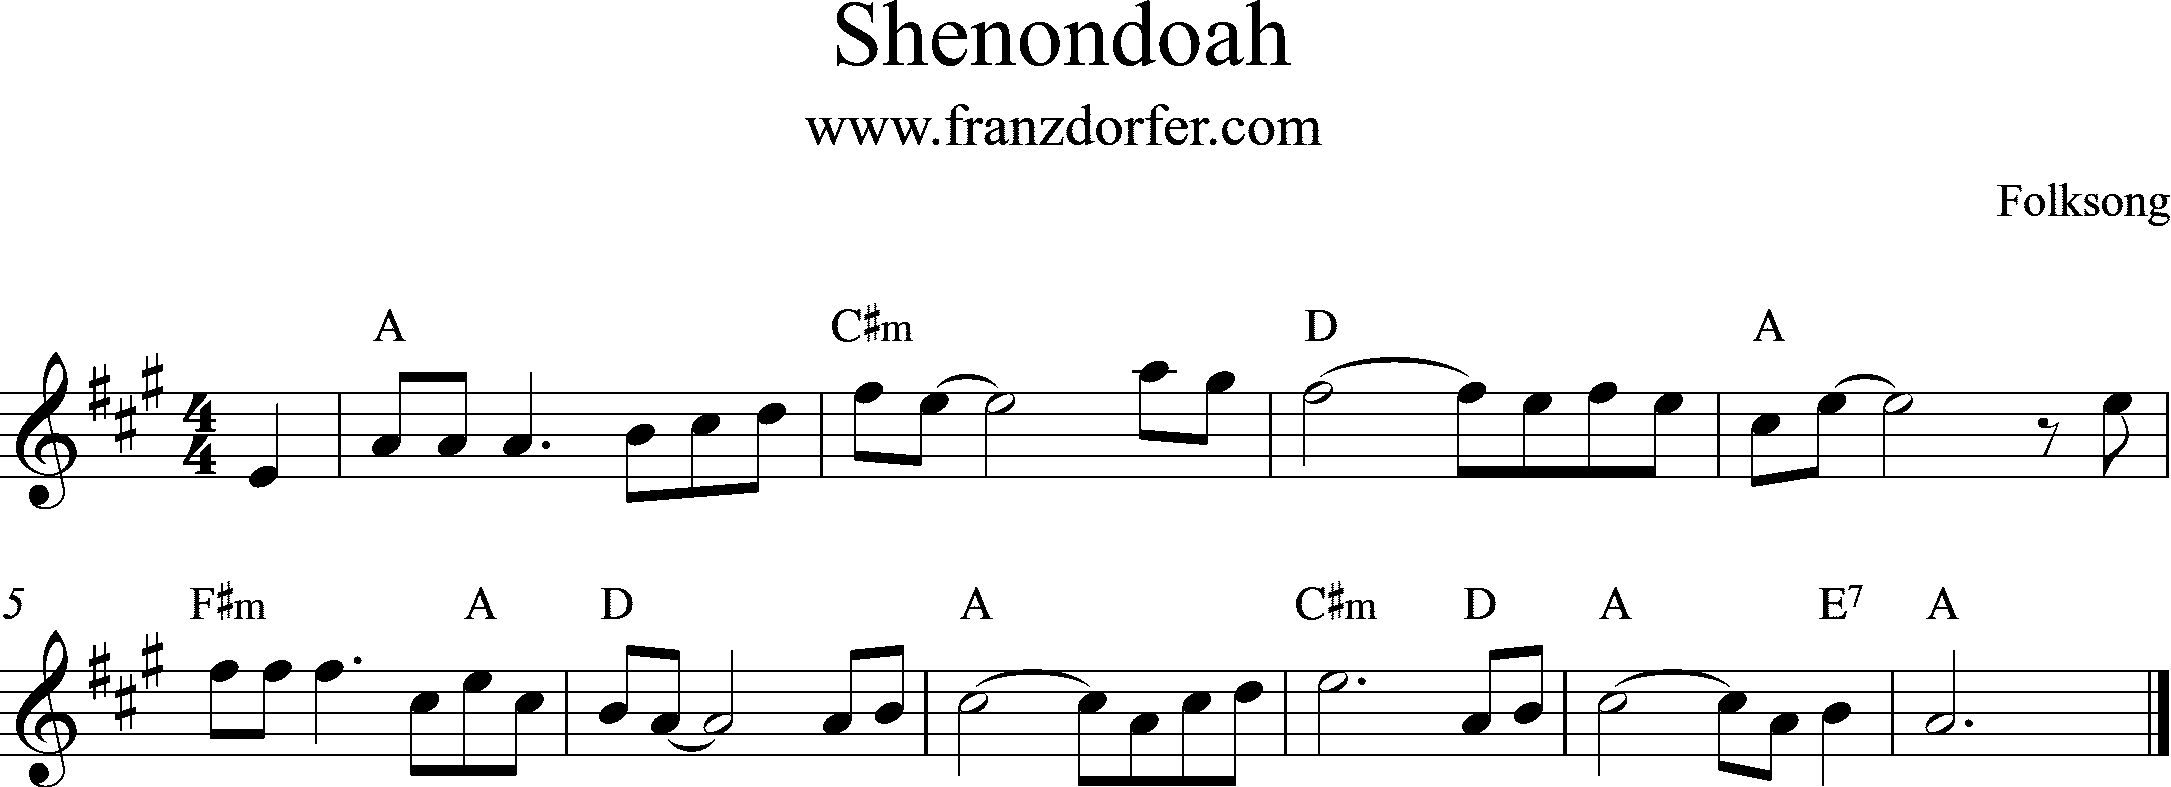 Shenondoah, A-Major